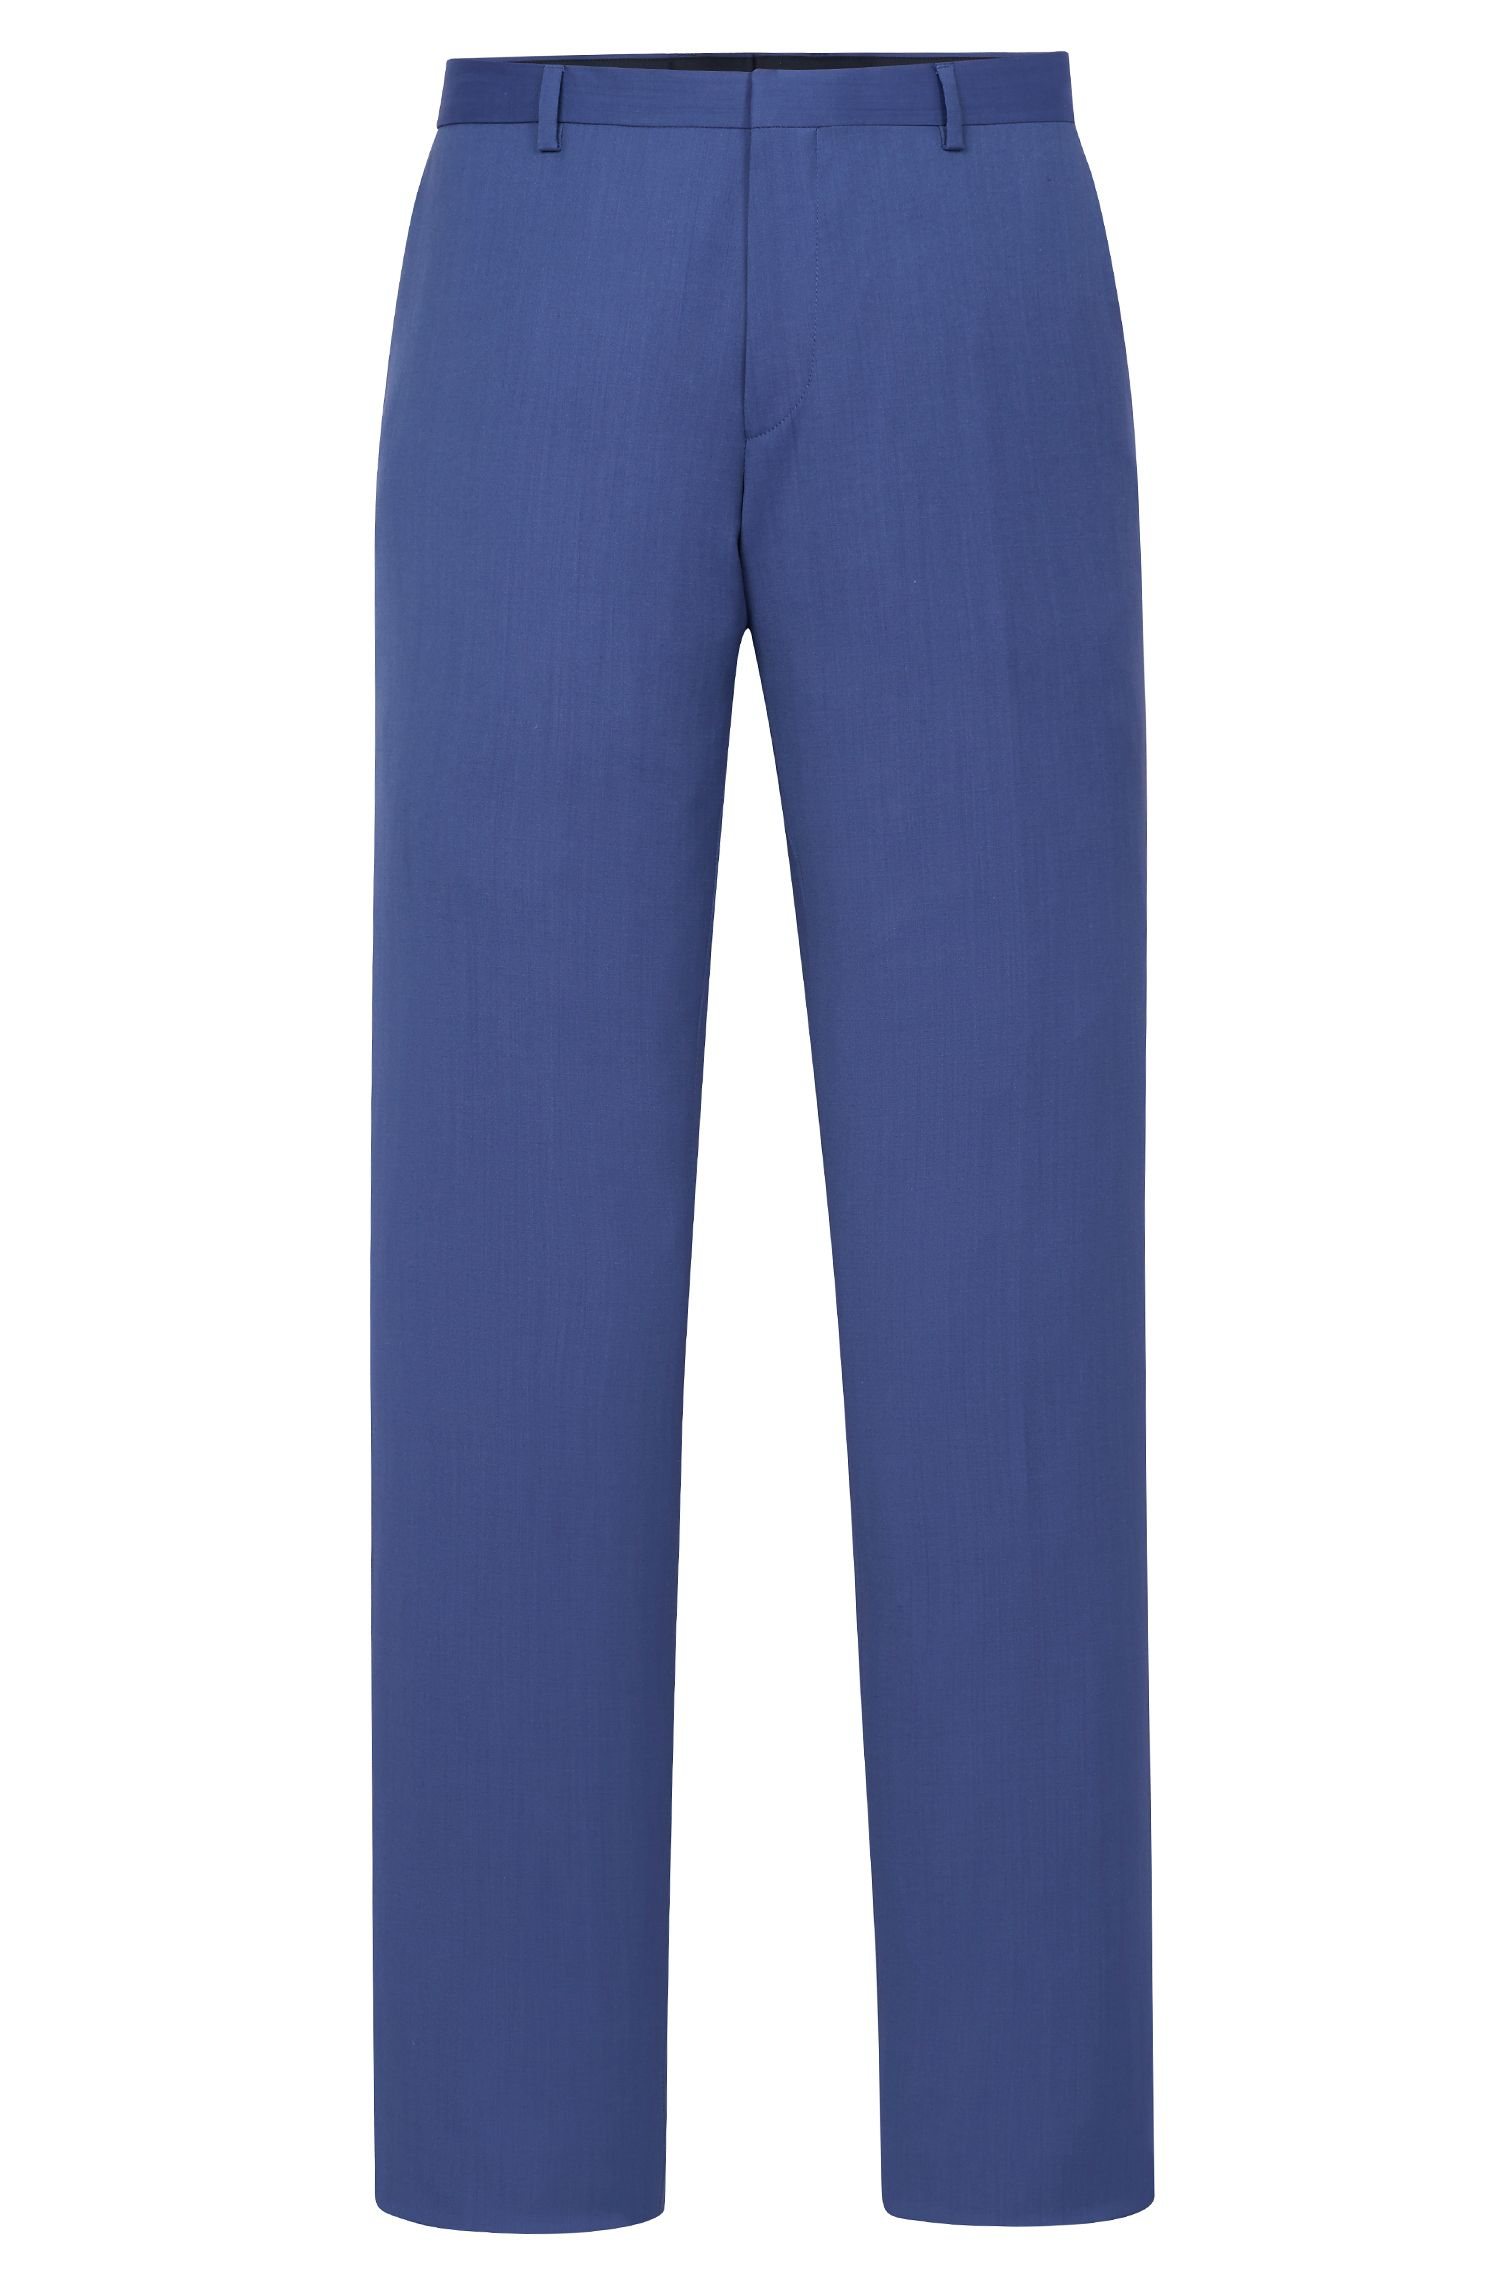 Italian Virgin Wool Dress Pant, Slim Fit | Genesis, Blue